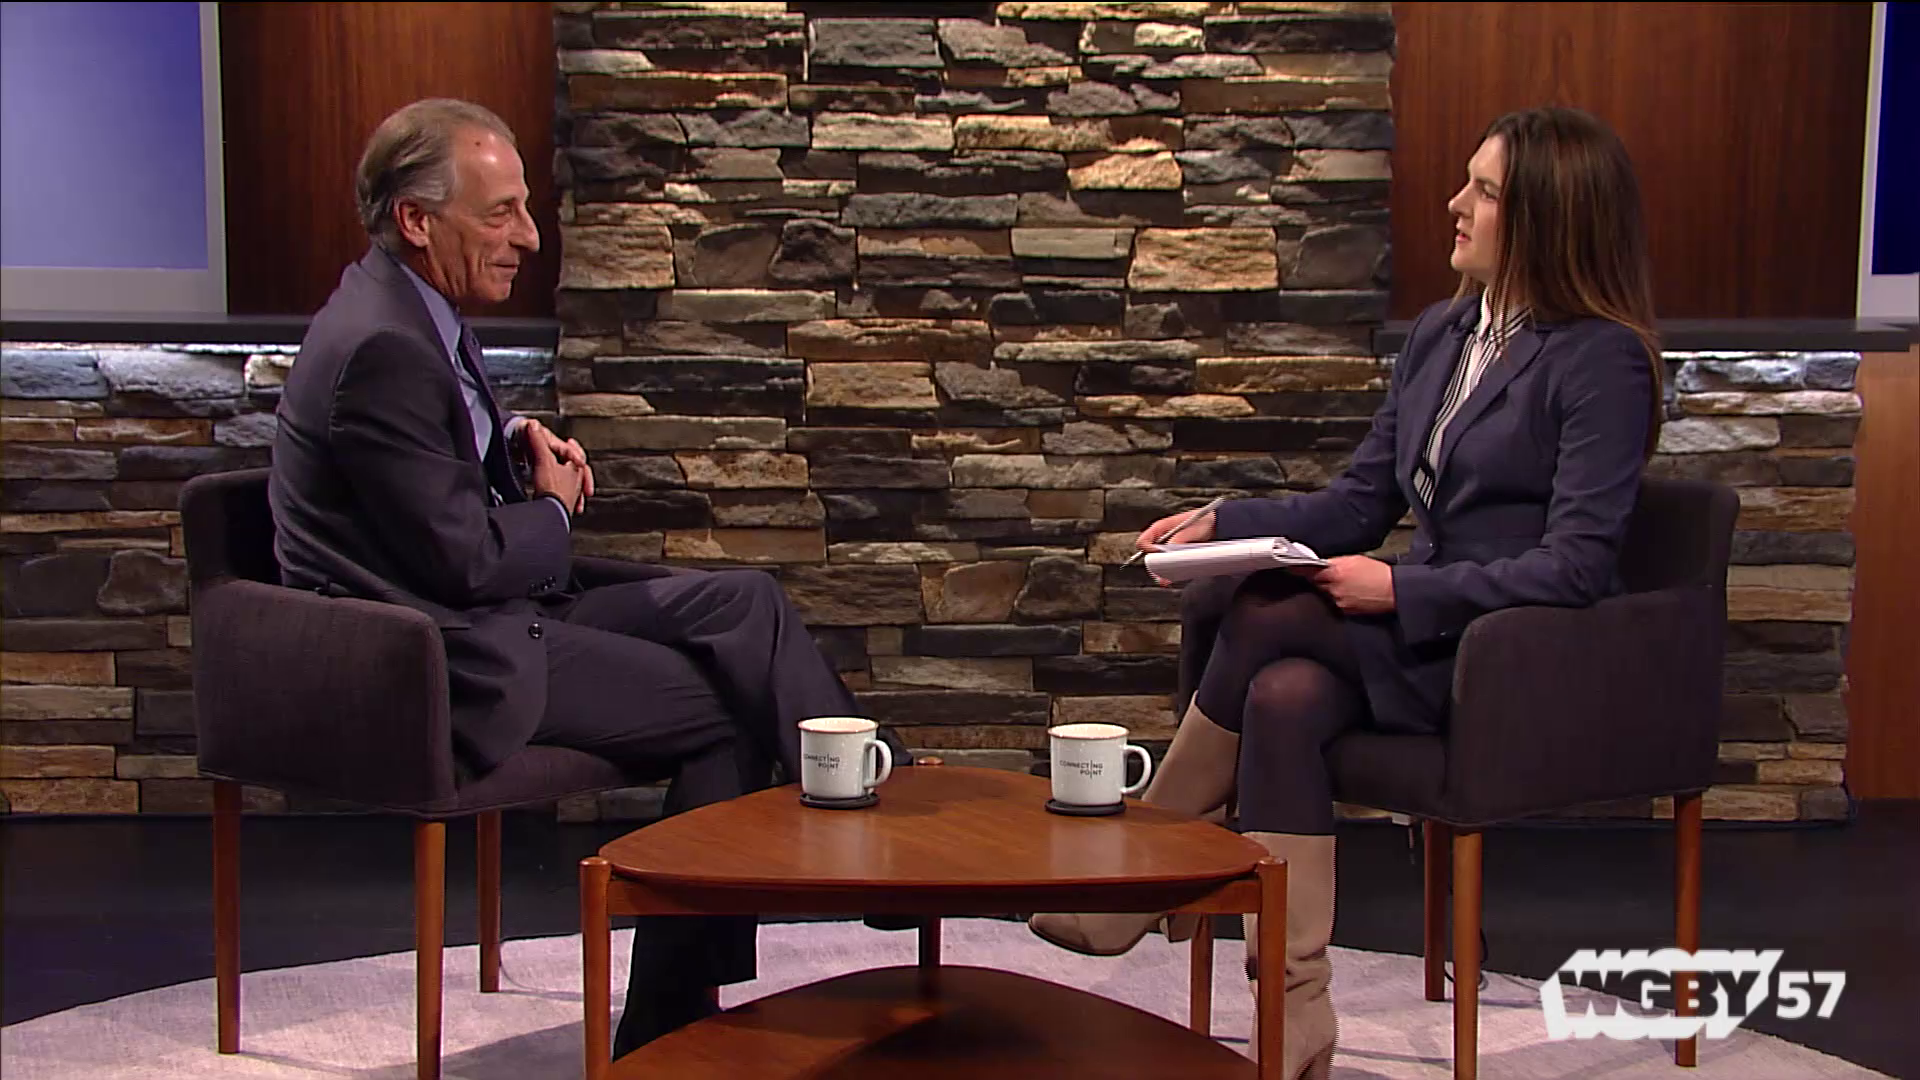 Steve Hoffman, chairman of the Cannabis Control Commission, discusses the newly released Massachusetts marijuana regulations with Carrie Saldo.